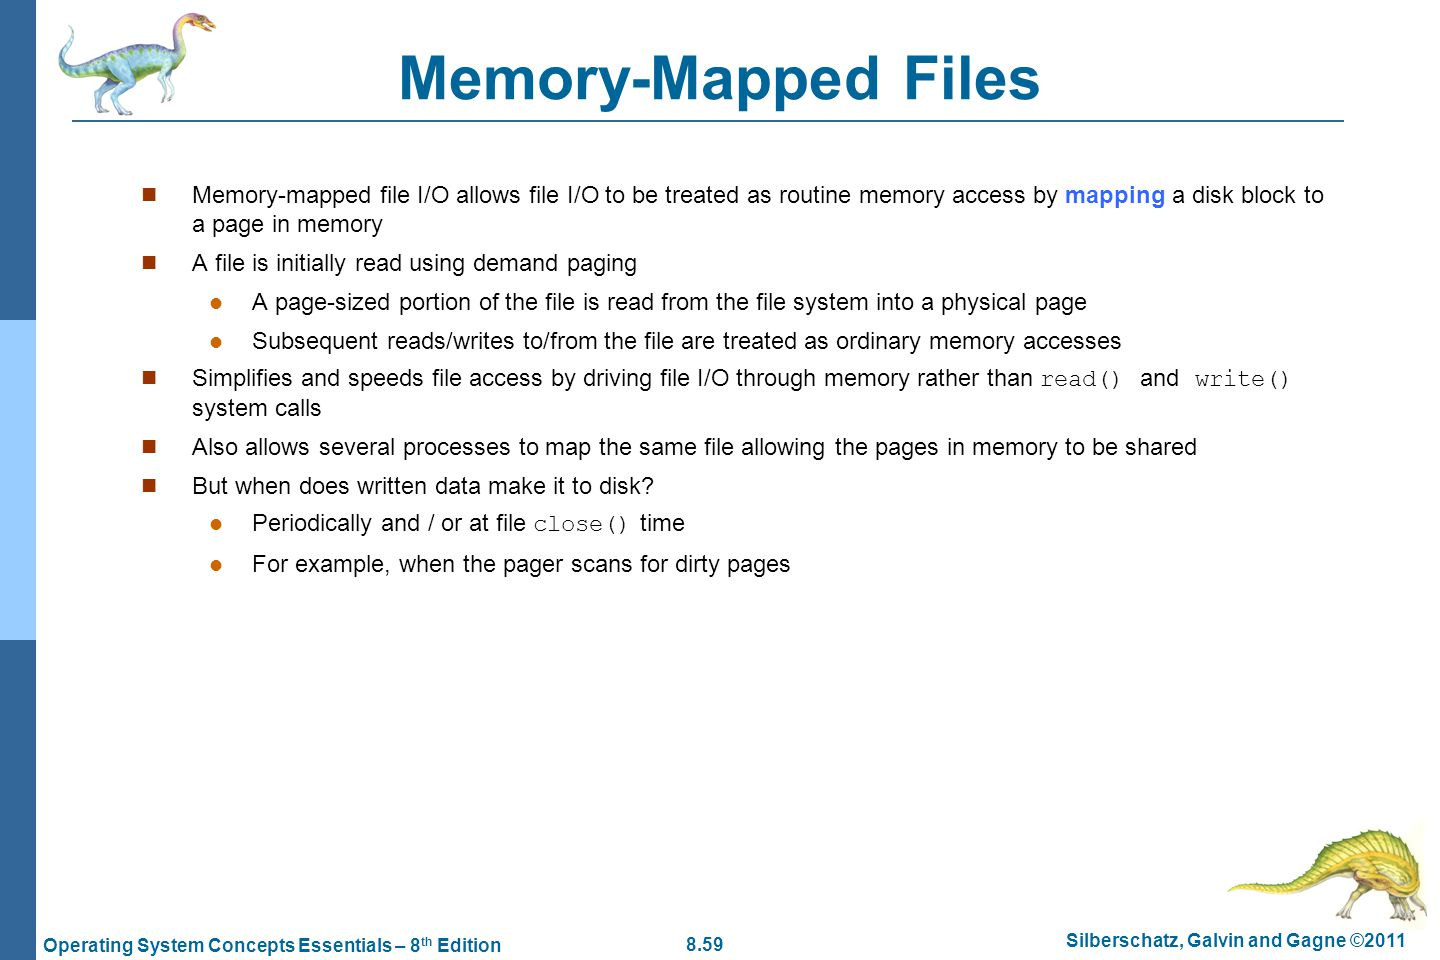 8.59 Silberschatz, Galvin and Gagne ©2011 Operating System Concepts Essentials – 8 th Edition Memory-Mapped Files Memory-mapped file I/O allows file I